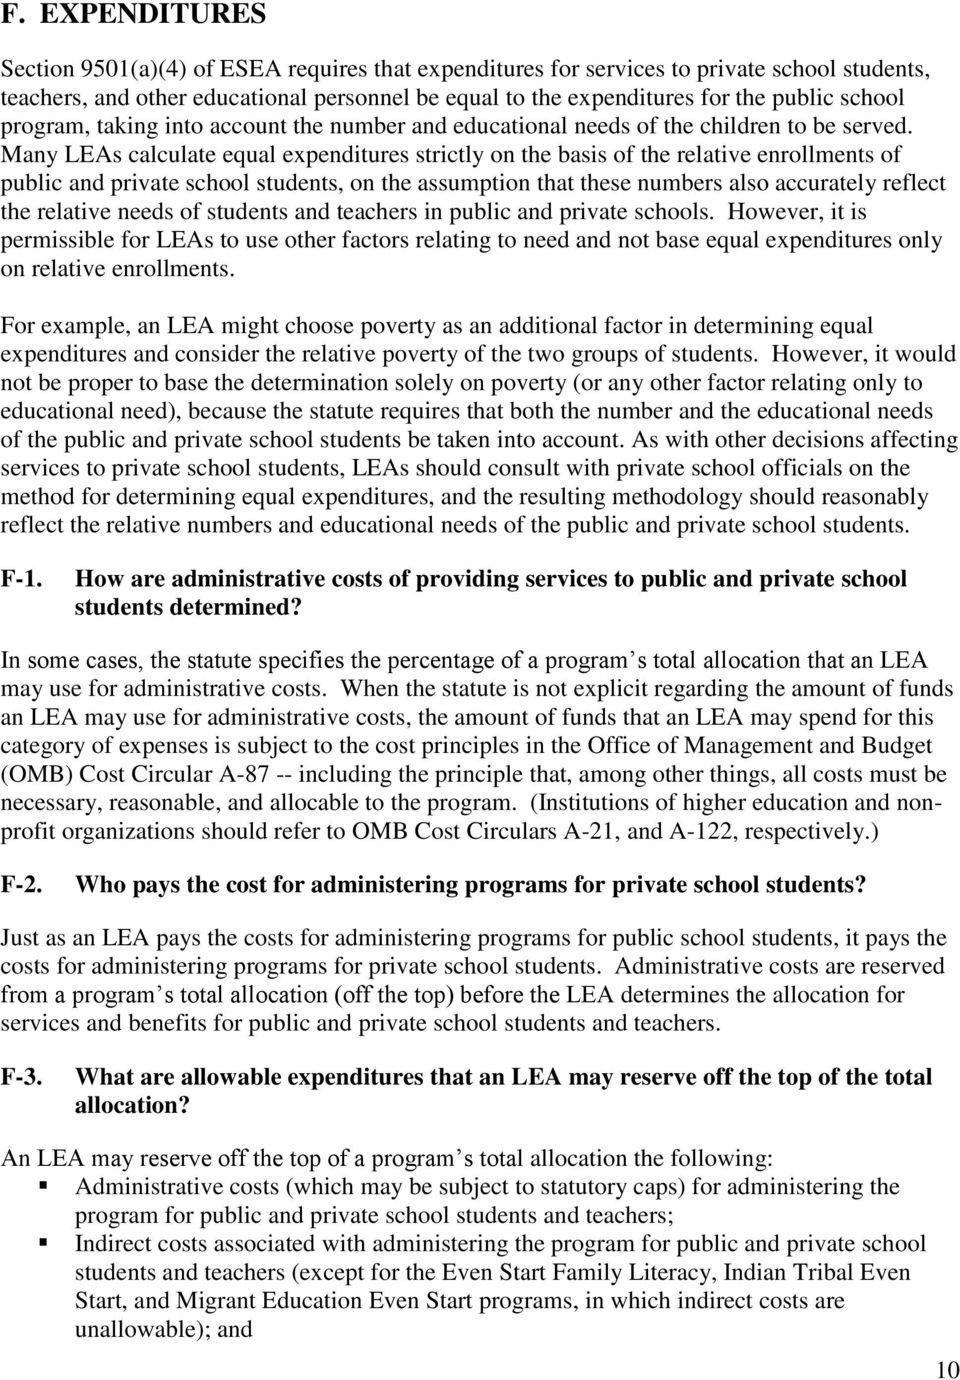 Many LEAs calculate equal expenditures strictly on the basis of the relative enrollments of public and private school students, on the assumption that these numbers also accurately reflect the